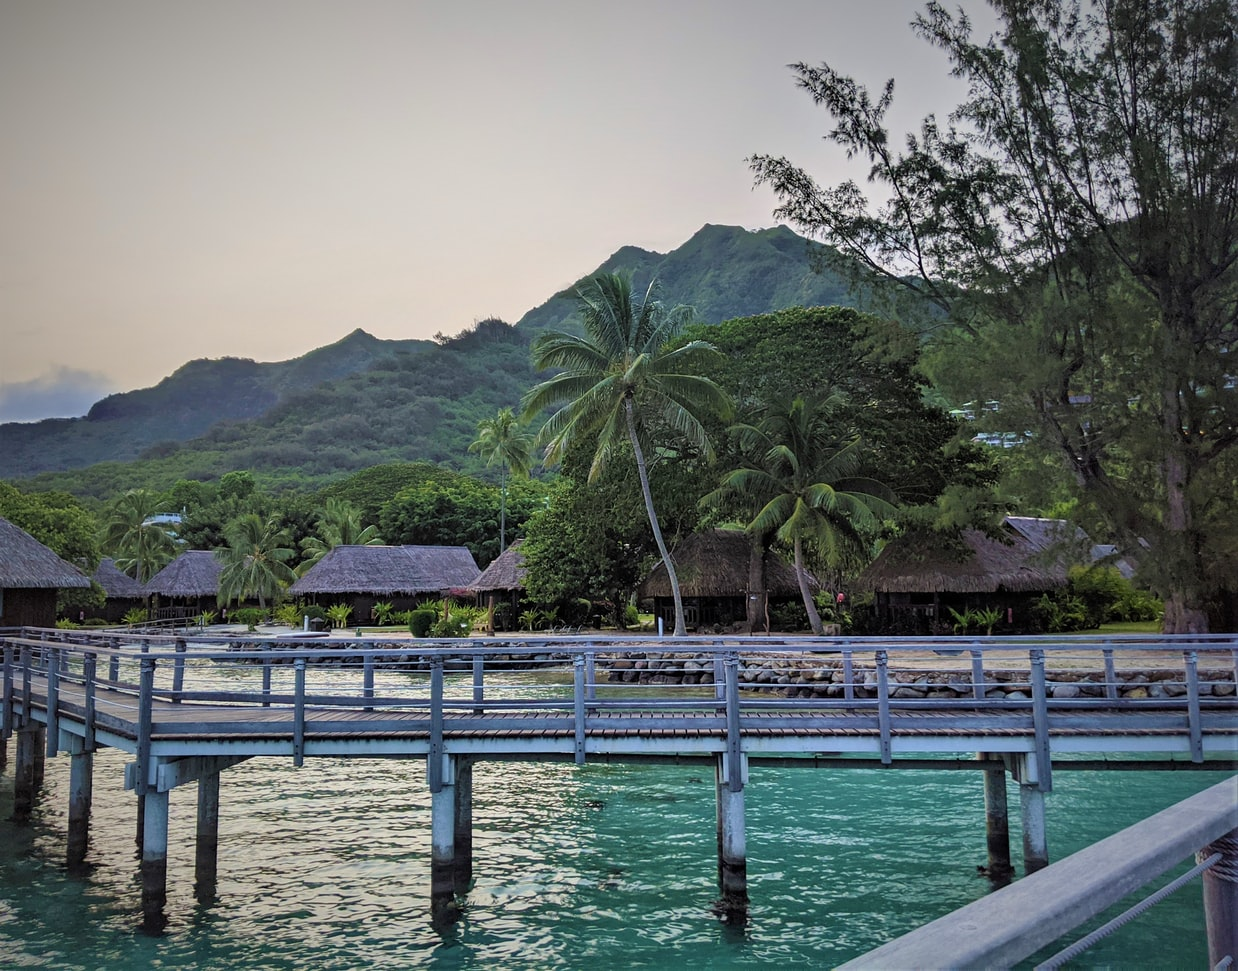 a dock and bungalows in Moorea, French Polynesia